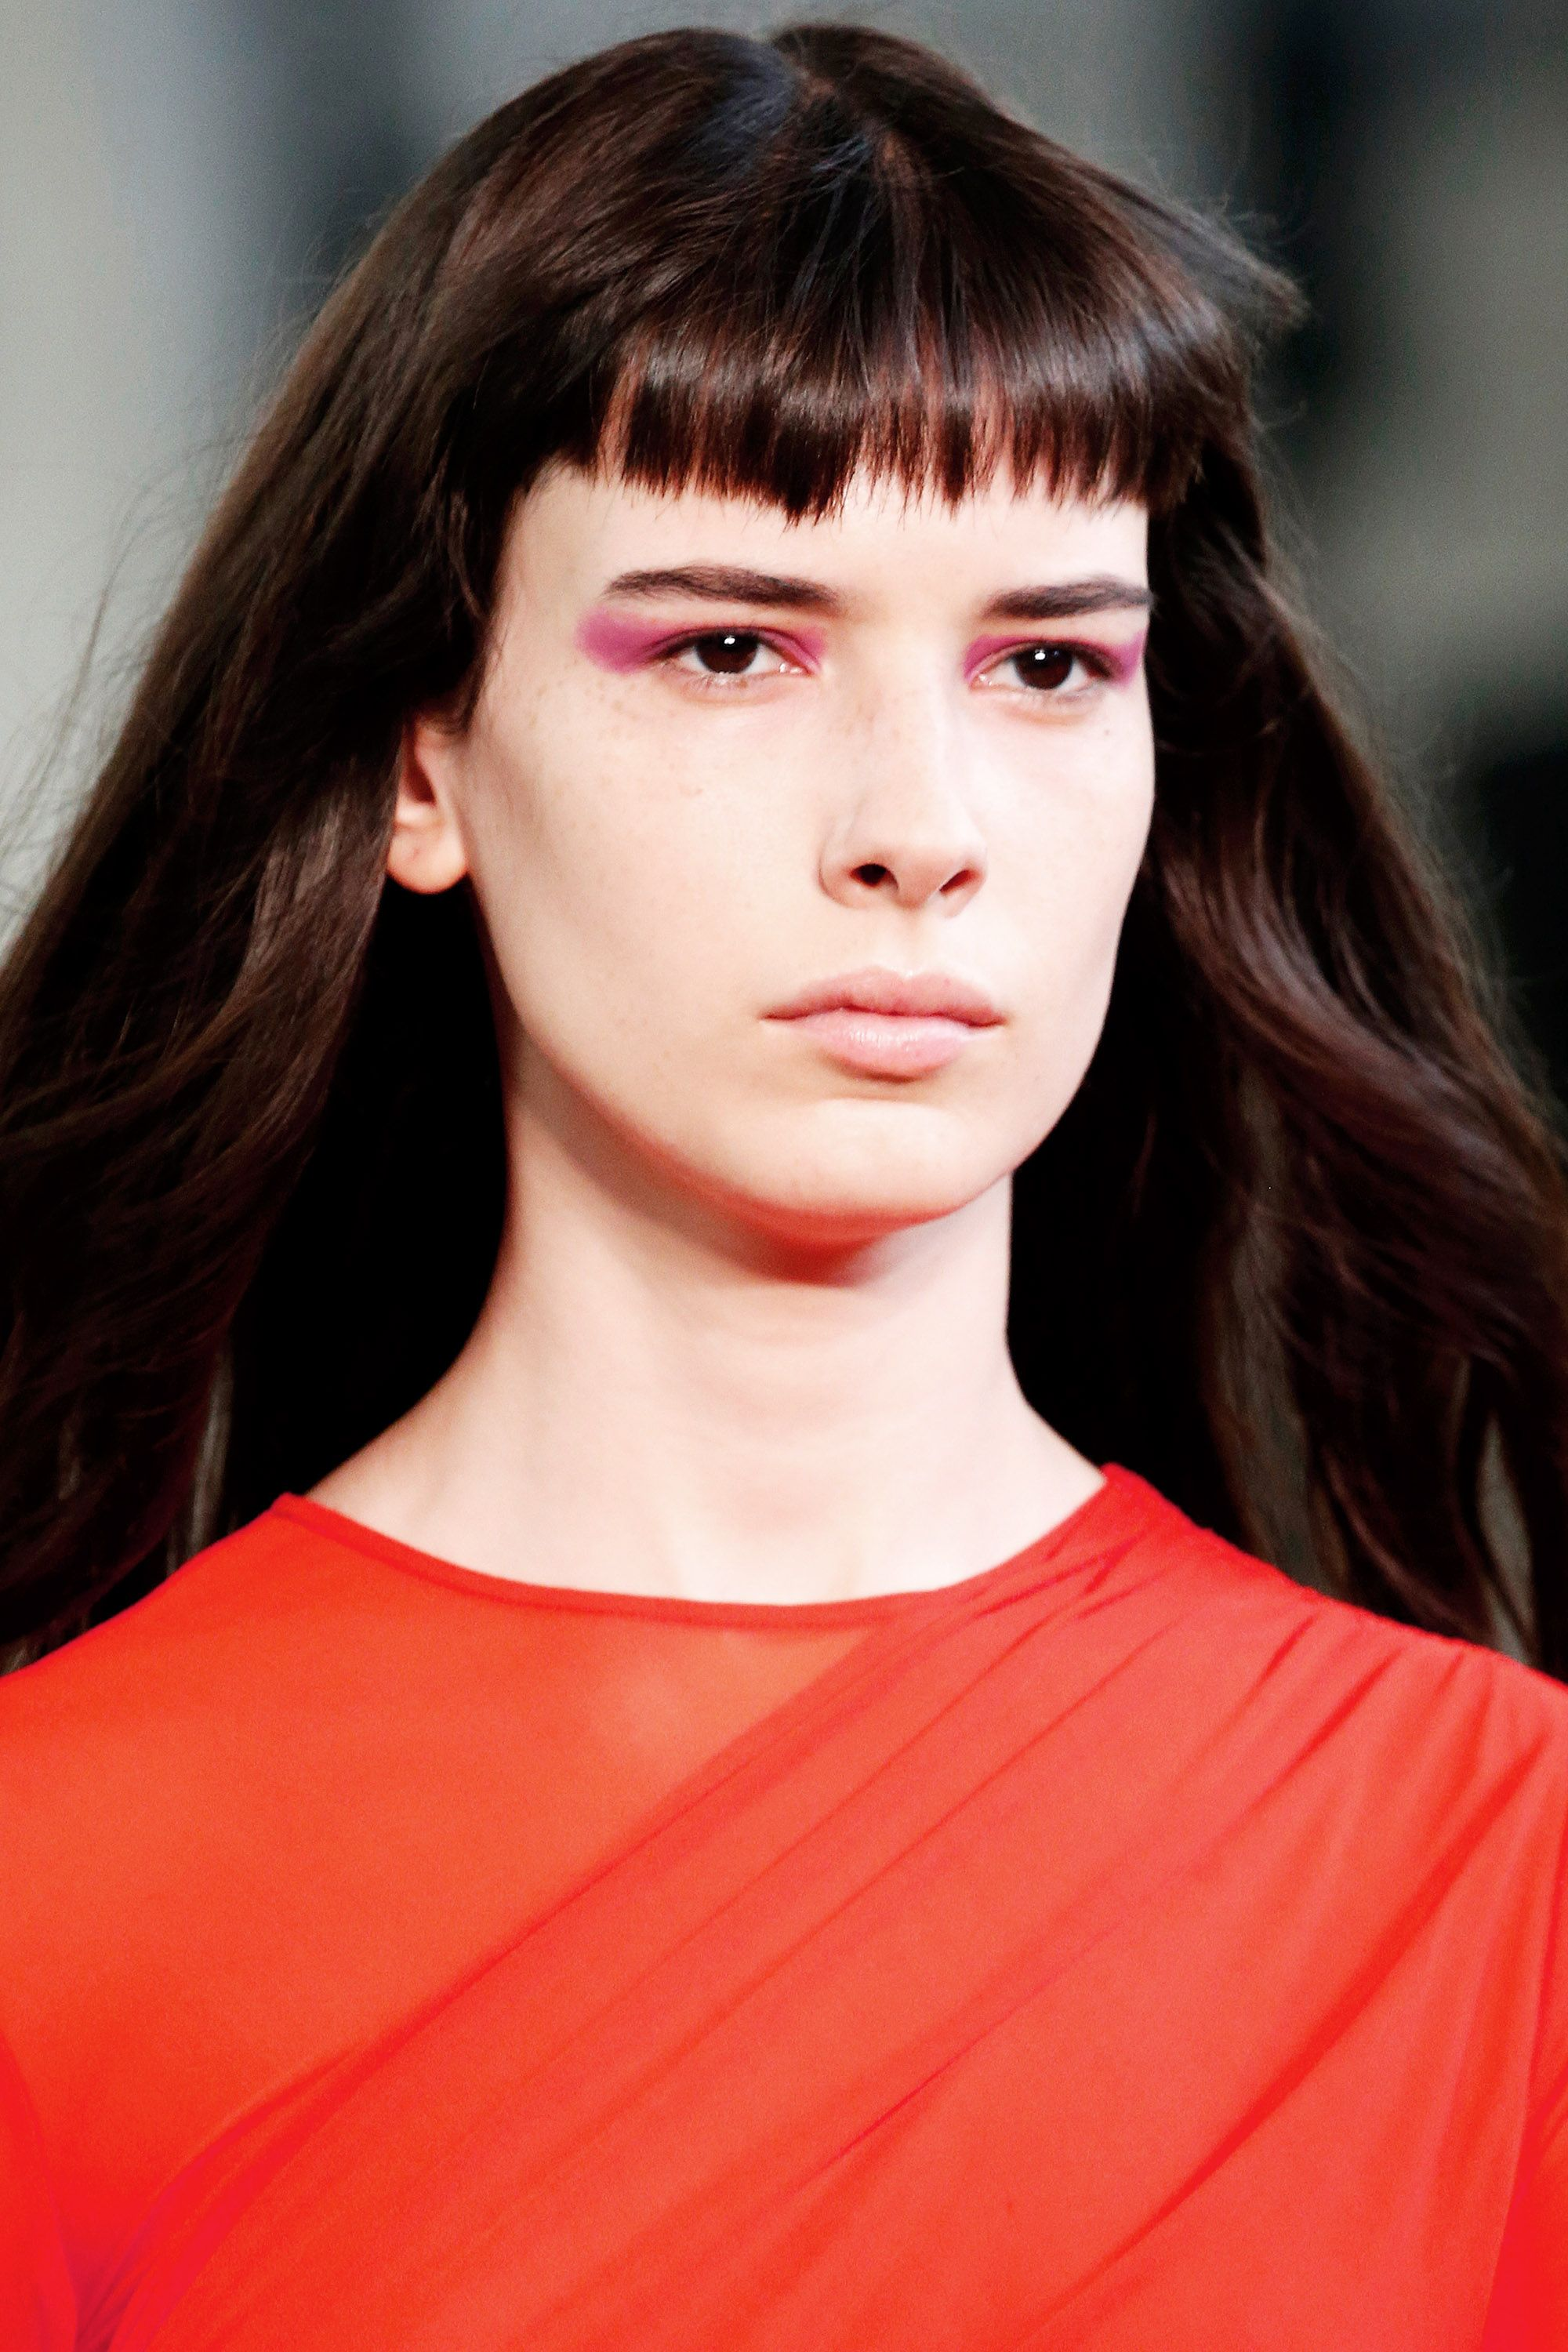 "<p> ""Think of this color as the 'new neutral,'"" says Martin, who<br> loved seeing the rosy shade at Dior, Pucci, and Isabel Marant. And the beauty<br> of a neutral is you can pull it off on any part of your face. ""Draped sheer and<br> high on the cheeks, graphic yet soft on the eyelids, or as a healthy glow on<br> the lips,"" says Martin. ""Pink adds a fresh take to a bare face.""</p><p><span class=""redactor-invisible-space"" data-verified=""redactor"" data-redactor-tag=""span"" data-redactor-class=""redactor-invisible-space""></span></p>"